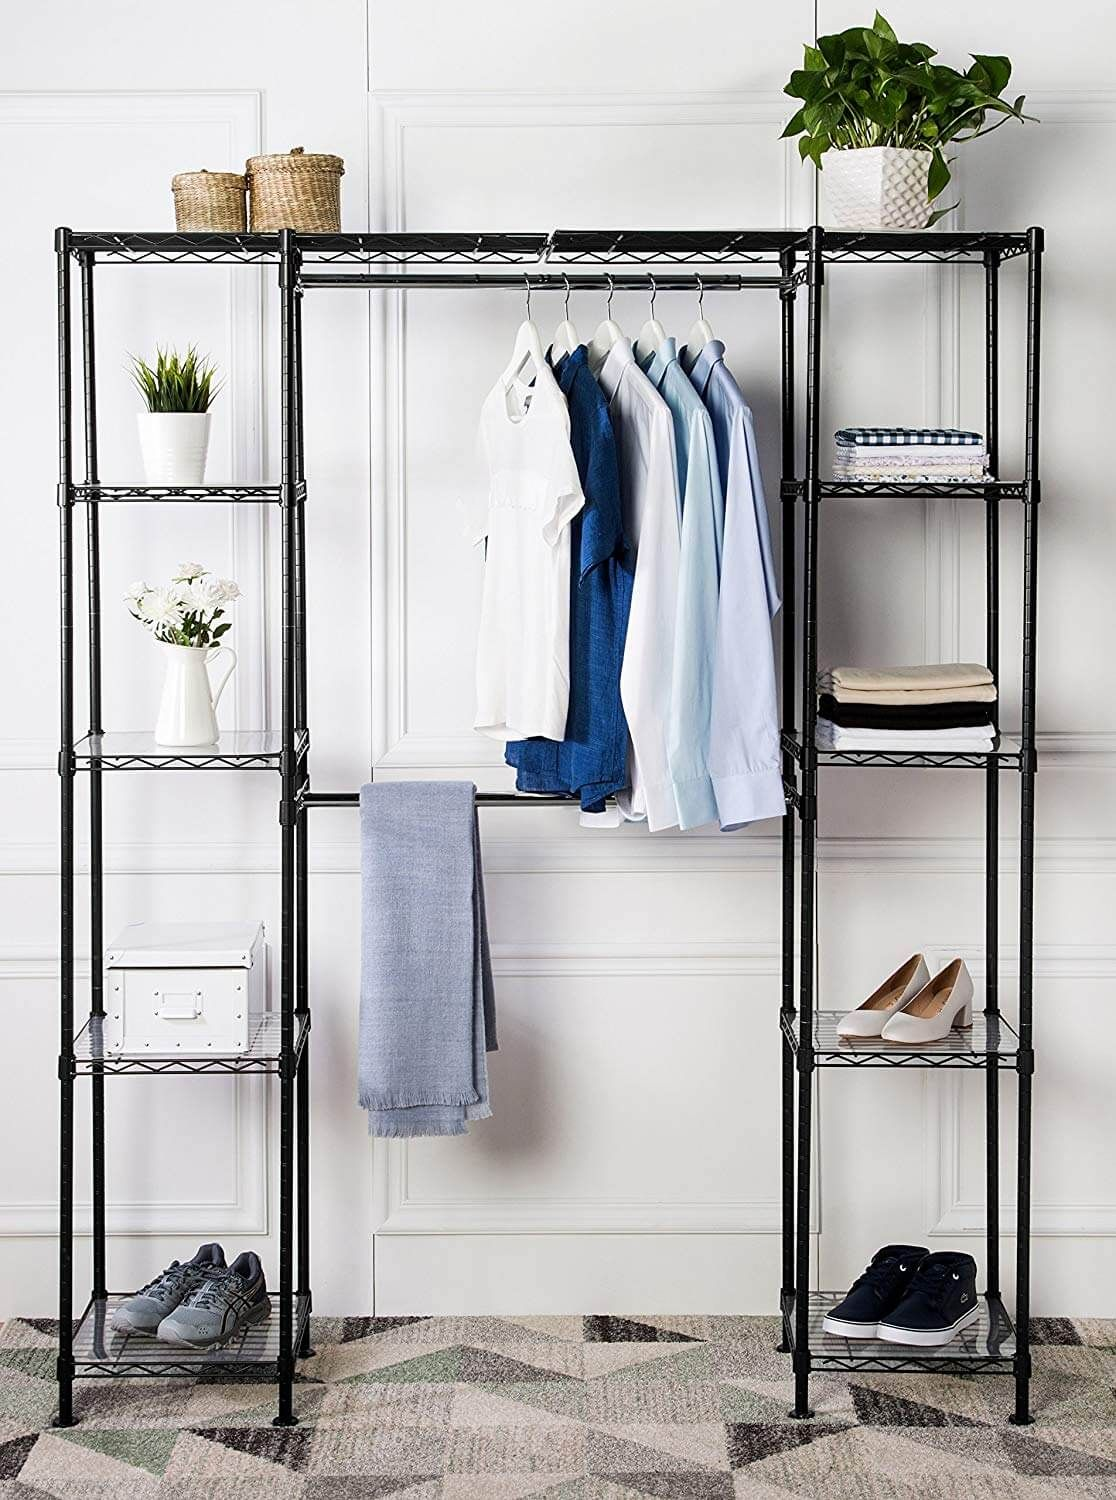 26 Stylish Closet Organizers To Stop The Clutter And Improve Your Home Adjustable Closet Shelving Closet Organizing Systems Custom Closet Organization